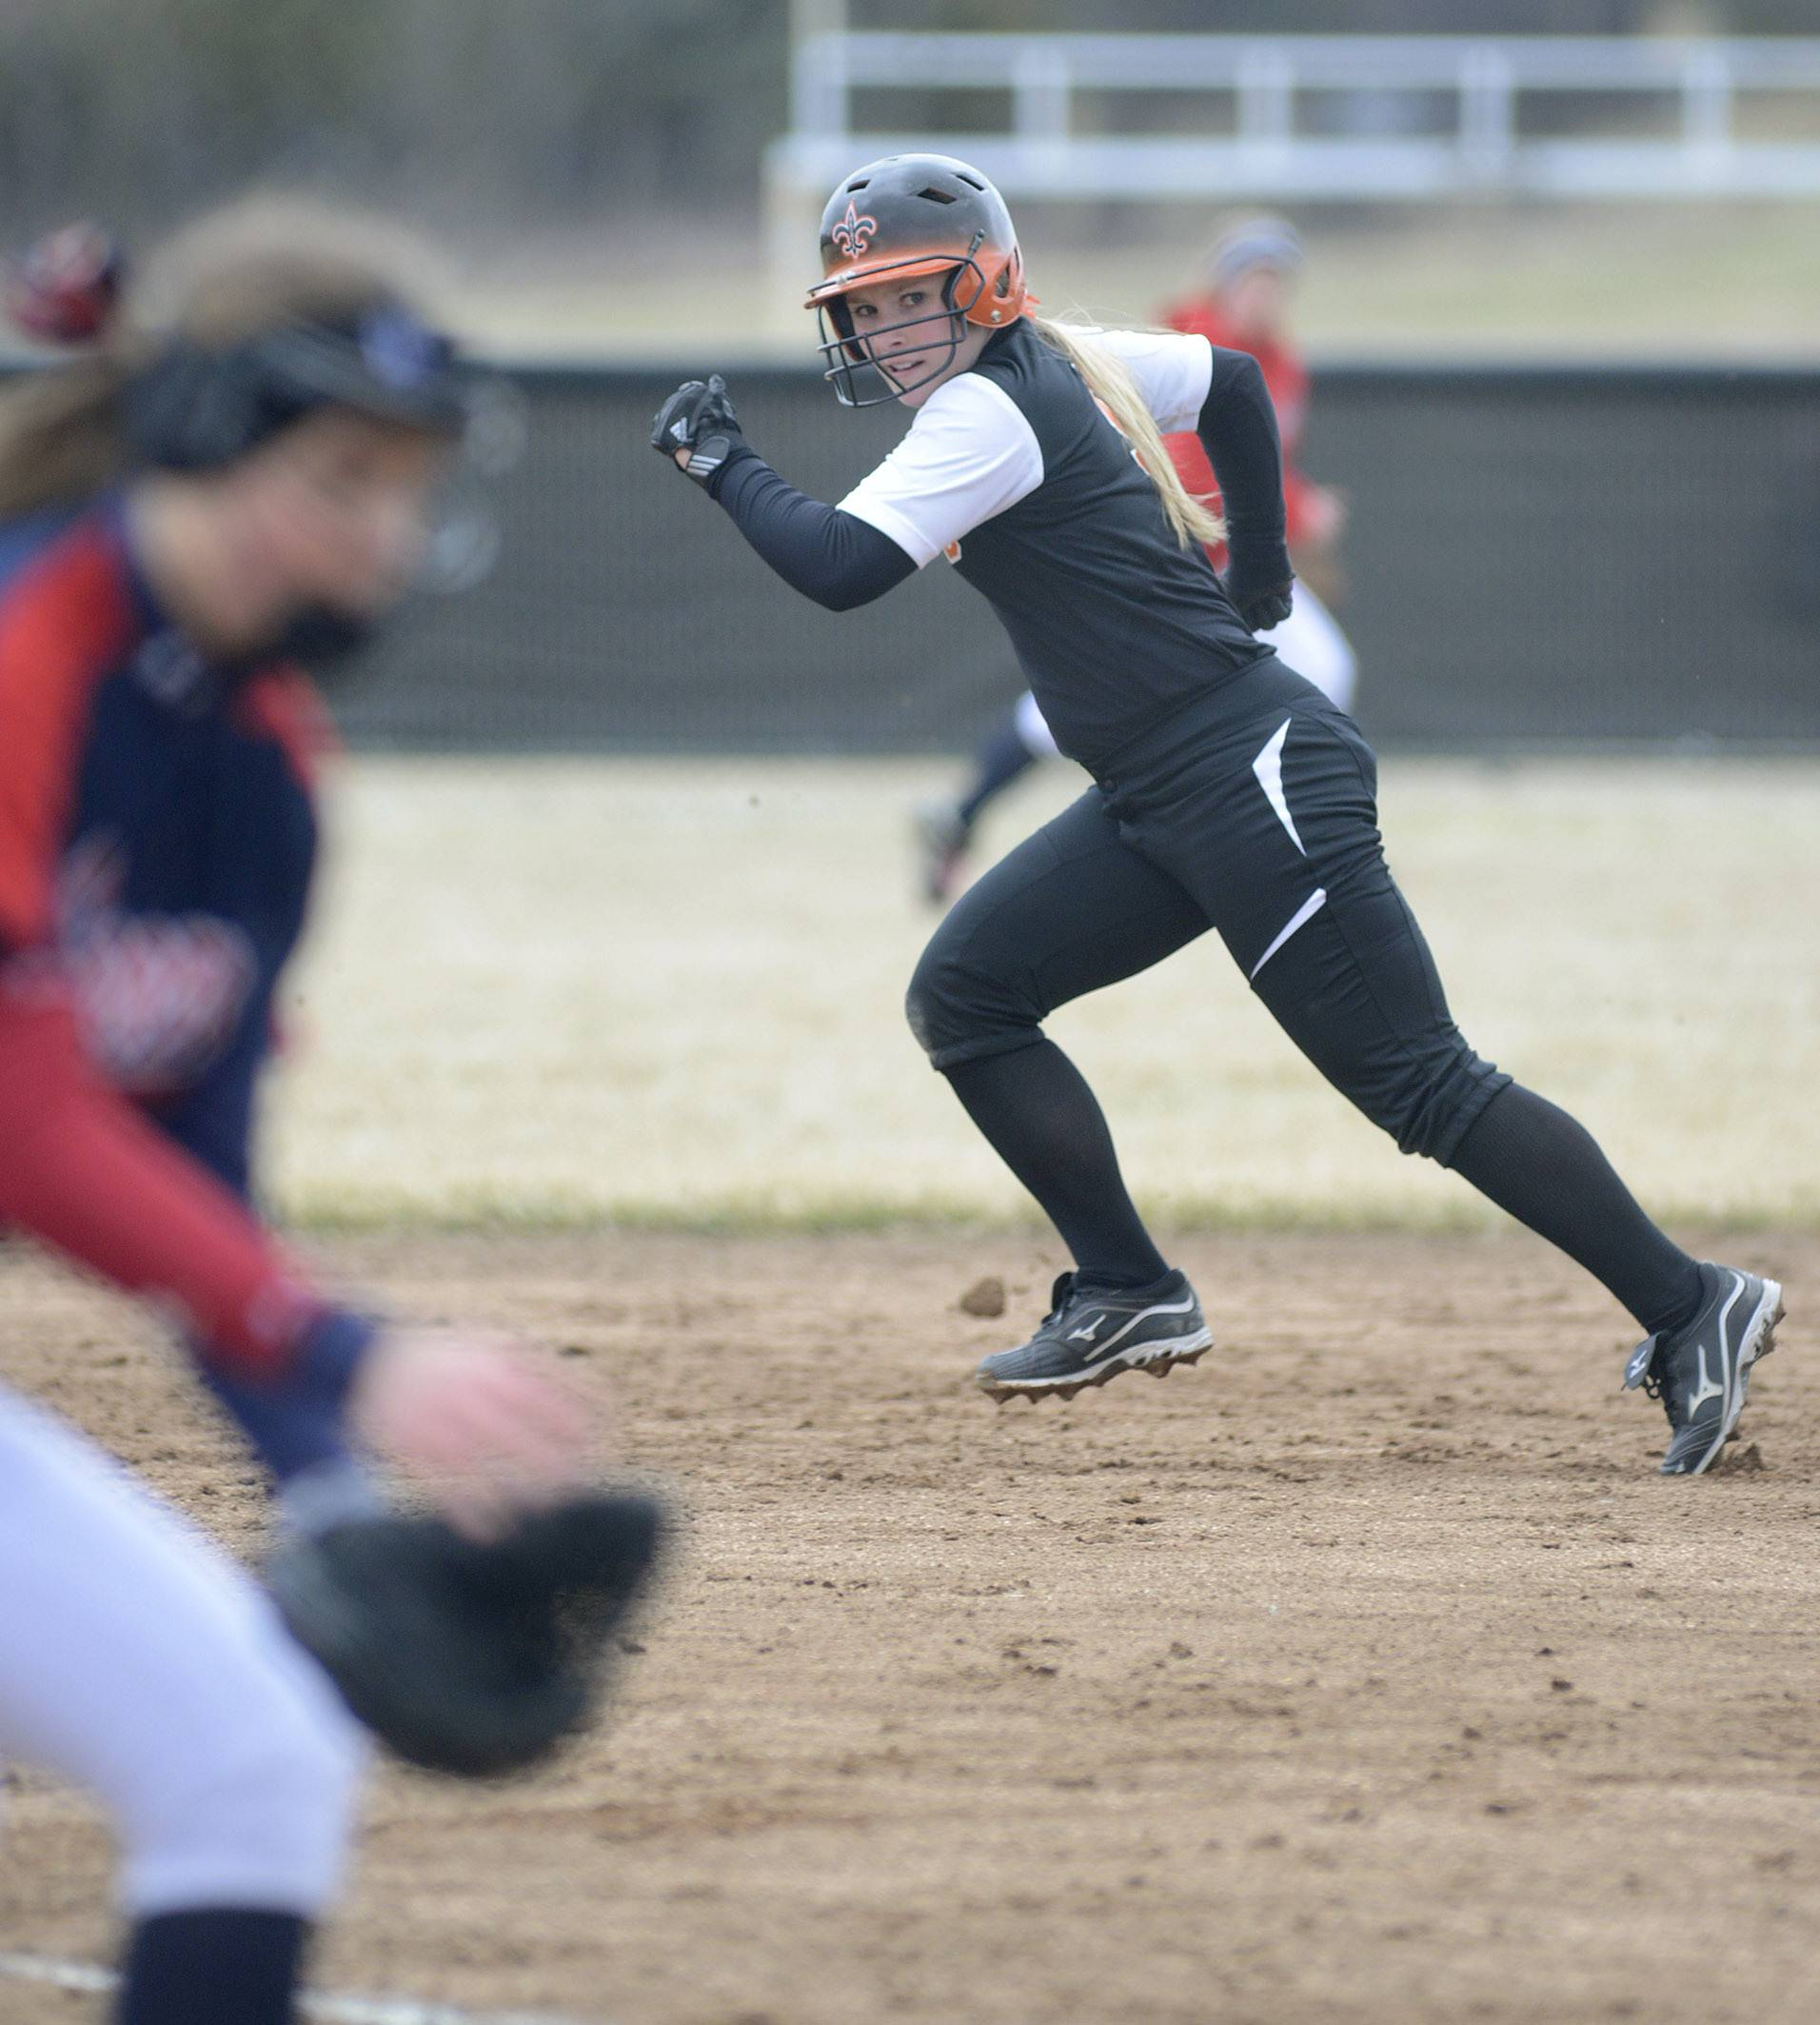 St. Charles East's Sarah Collalti heads to second base as West Aurora's Kaylee Hayton pitches in the third inning on Friday, April 4.